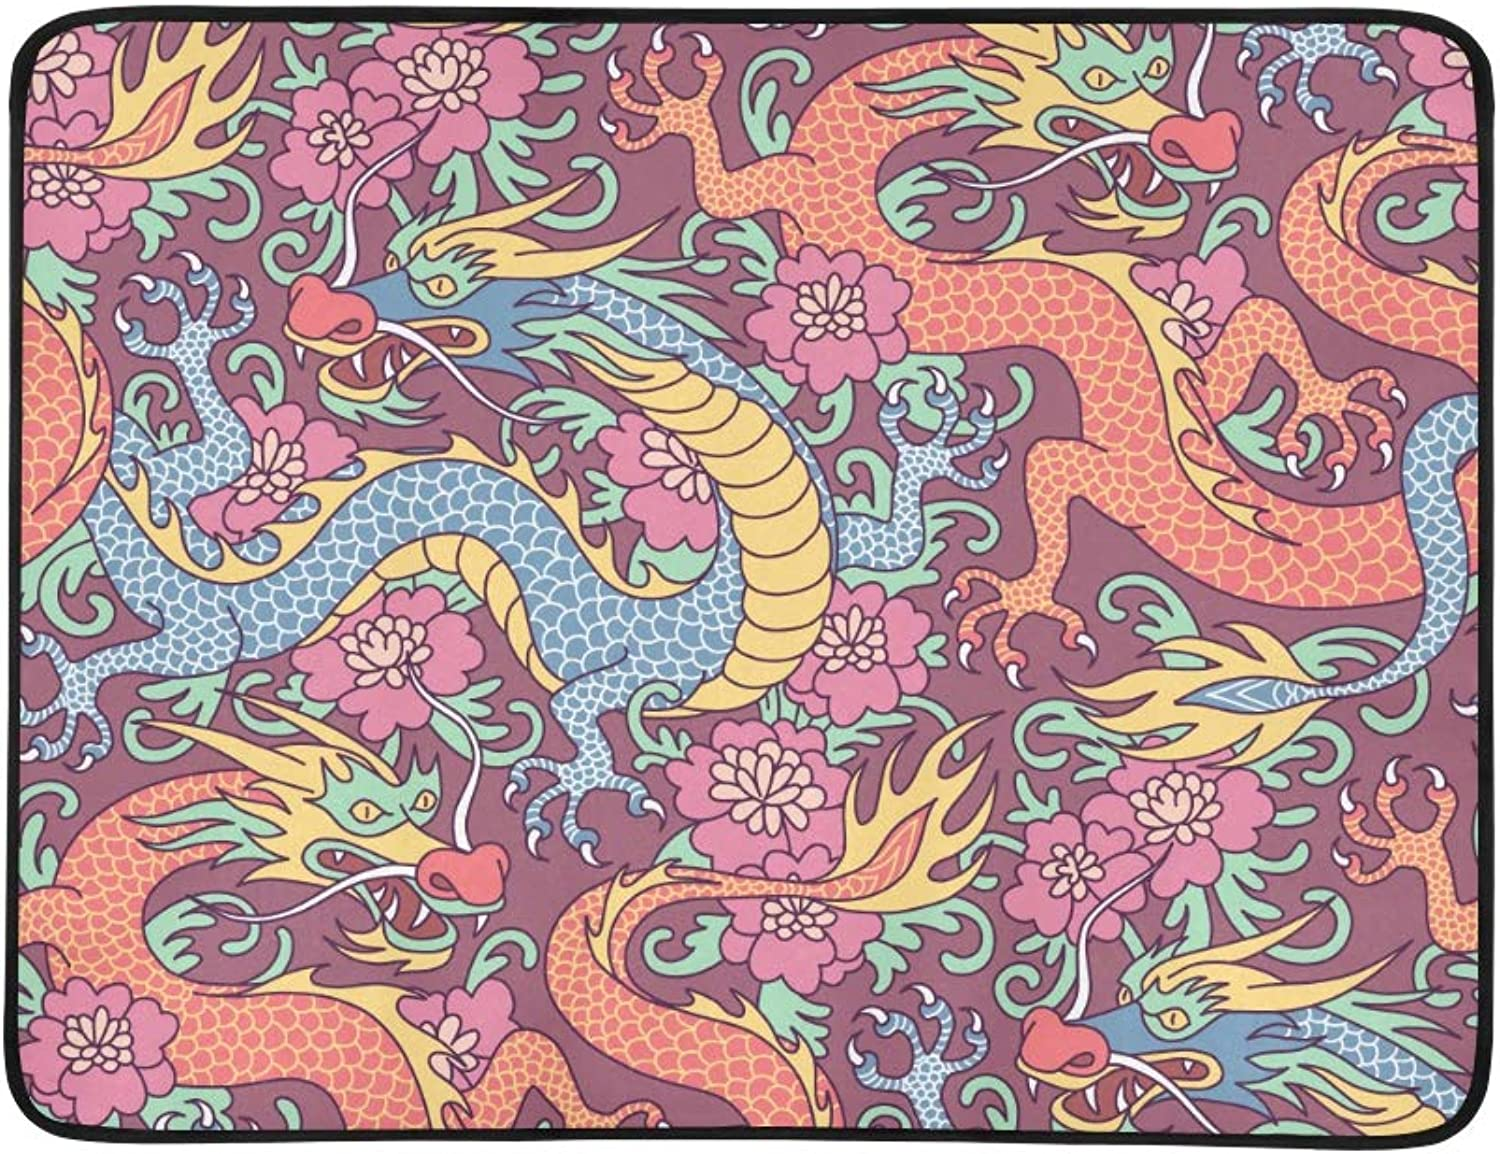 Dragons Fighting in The Clouds Pattern Portable and Foldable Blanket Mat 60x78 Inch Handy Mat for Camping Picnic Beach Indoor Outdoor Travel